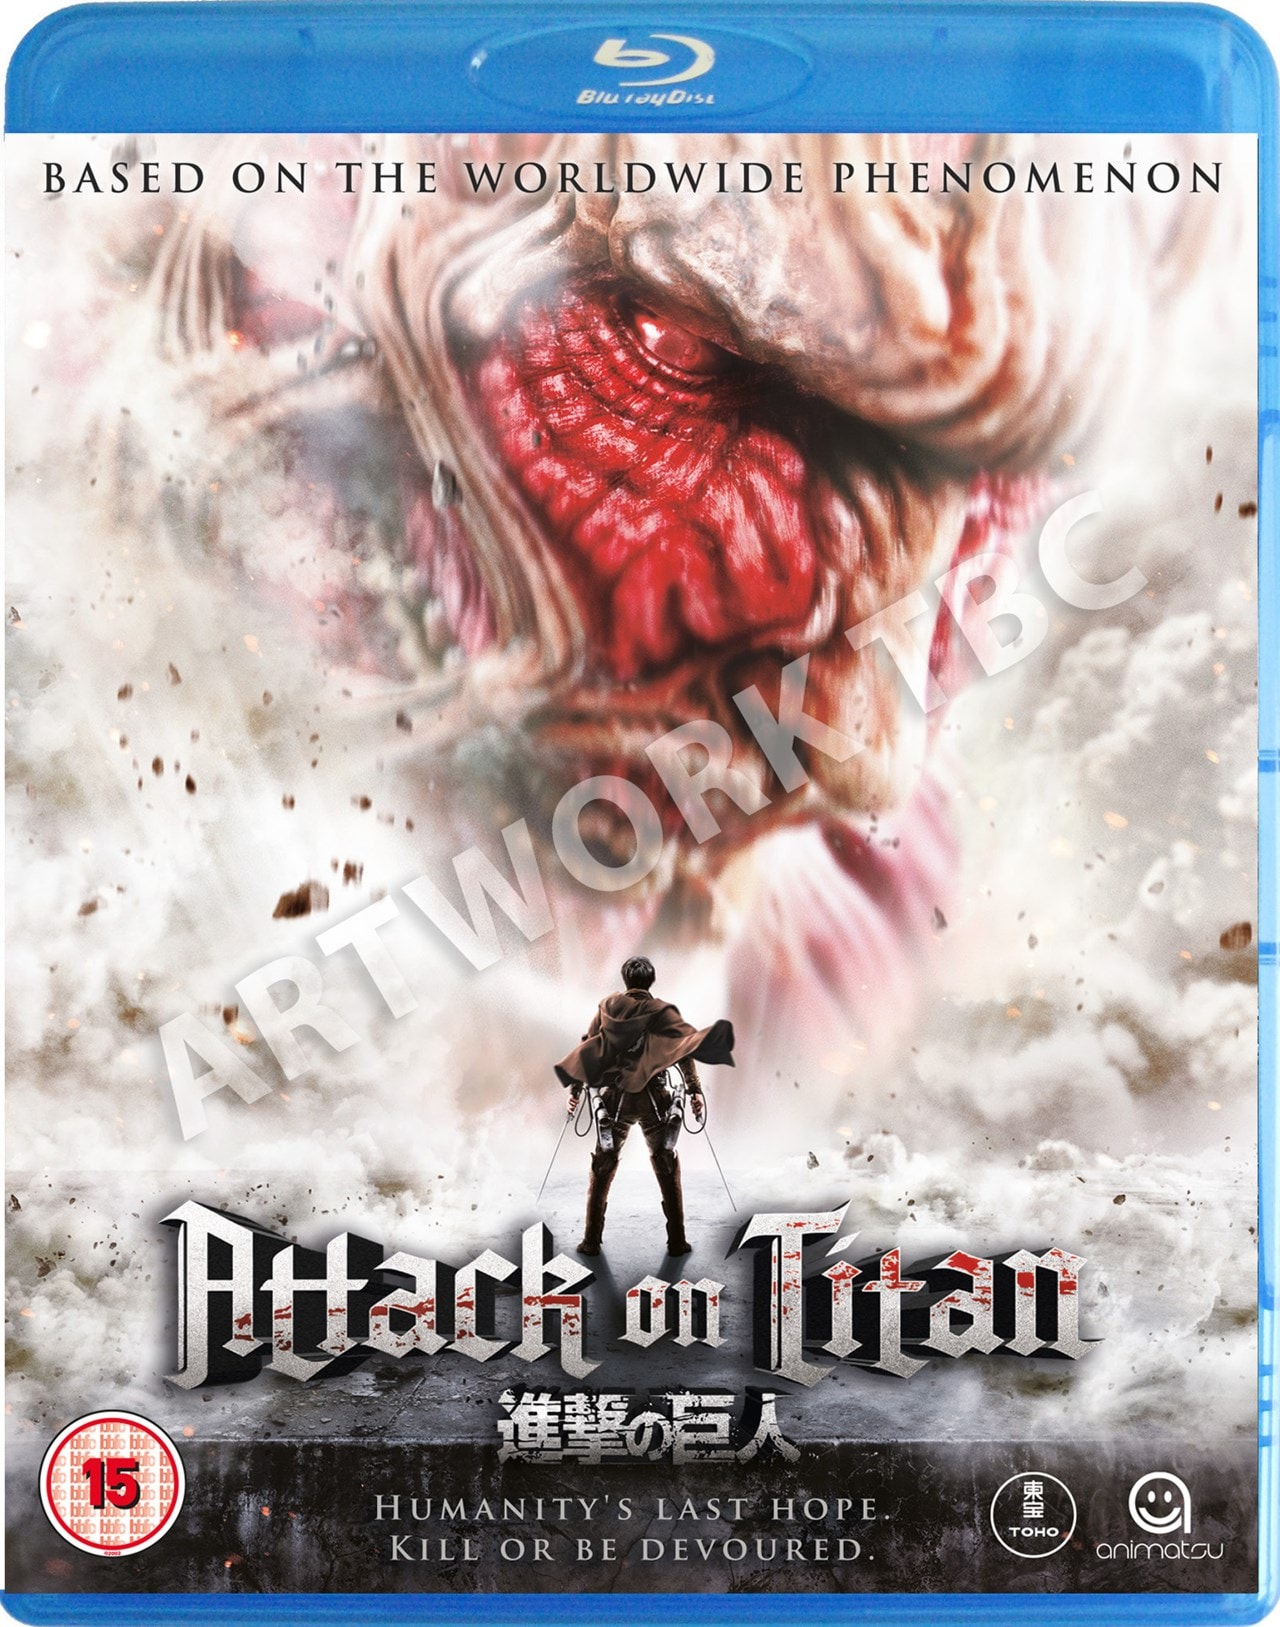 Attack On Titan: Part 1 | Blu-ray | Free shipping over £20 ...